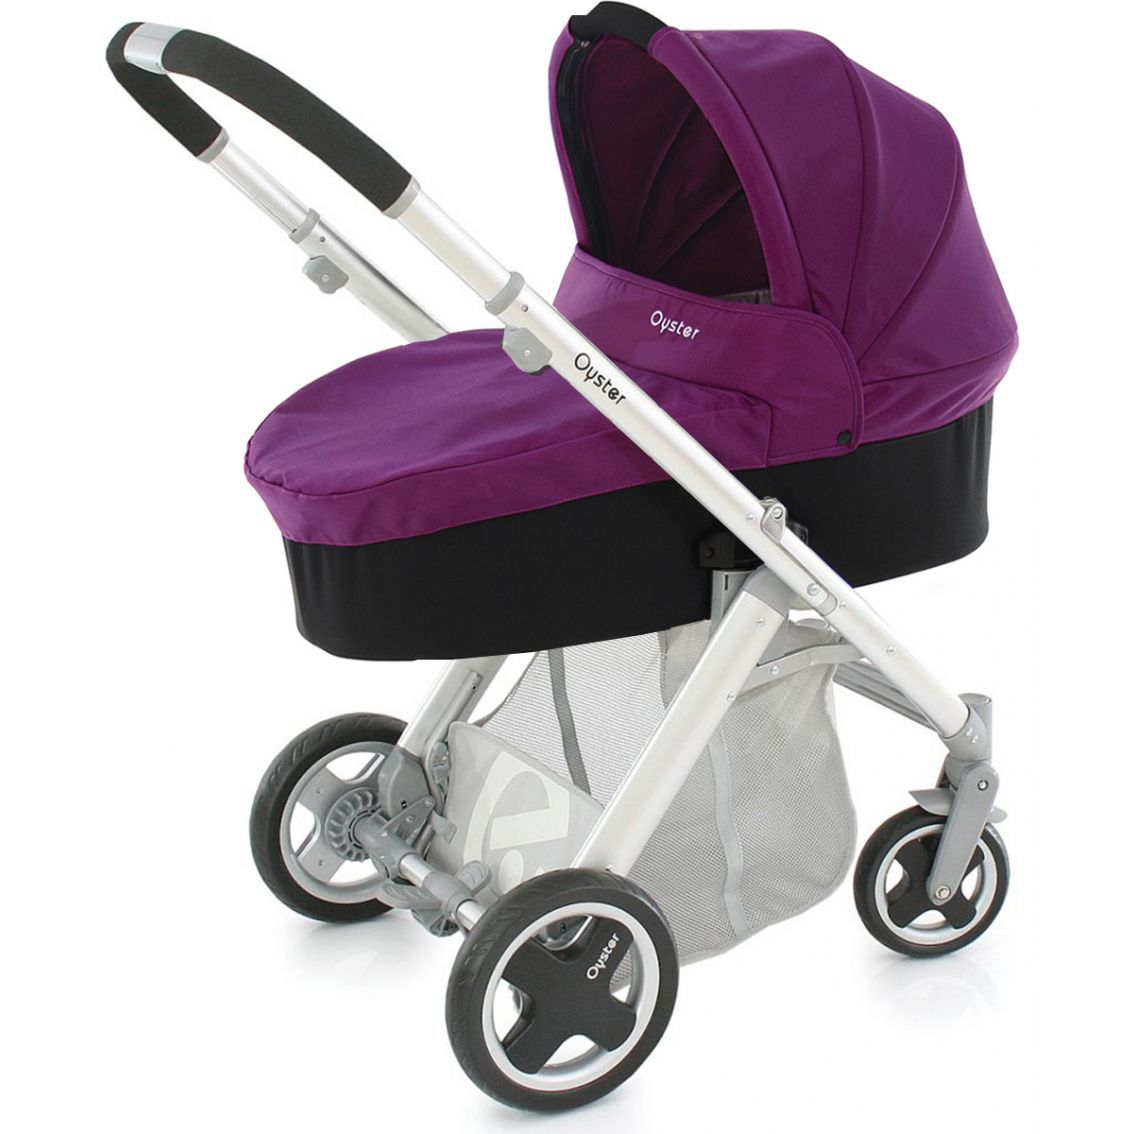 Babystyle Oyster pram - Grape | Baby Thing's I Love!! | Pinterest ...